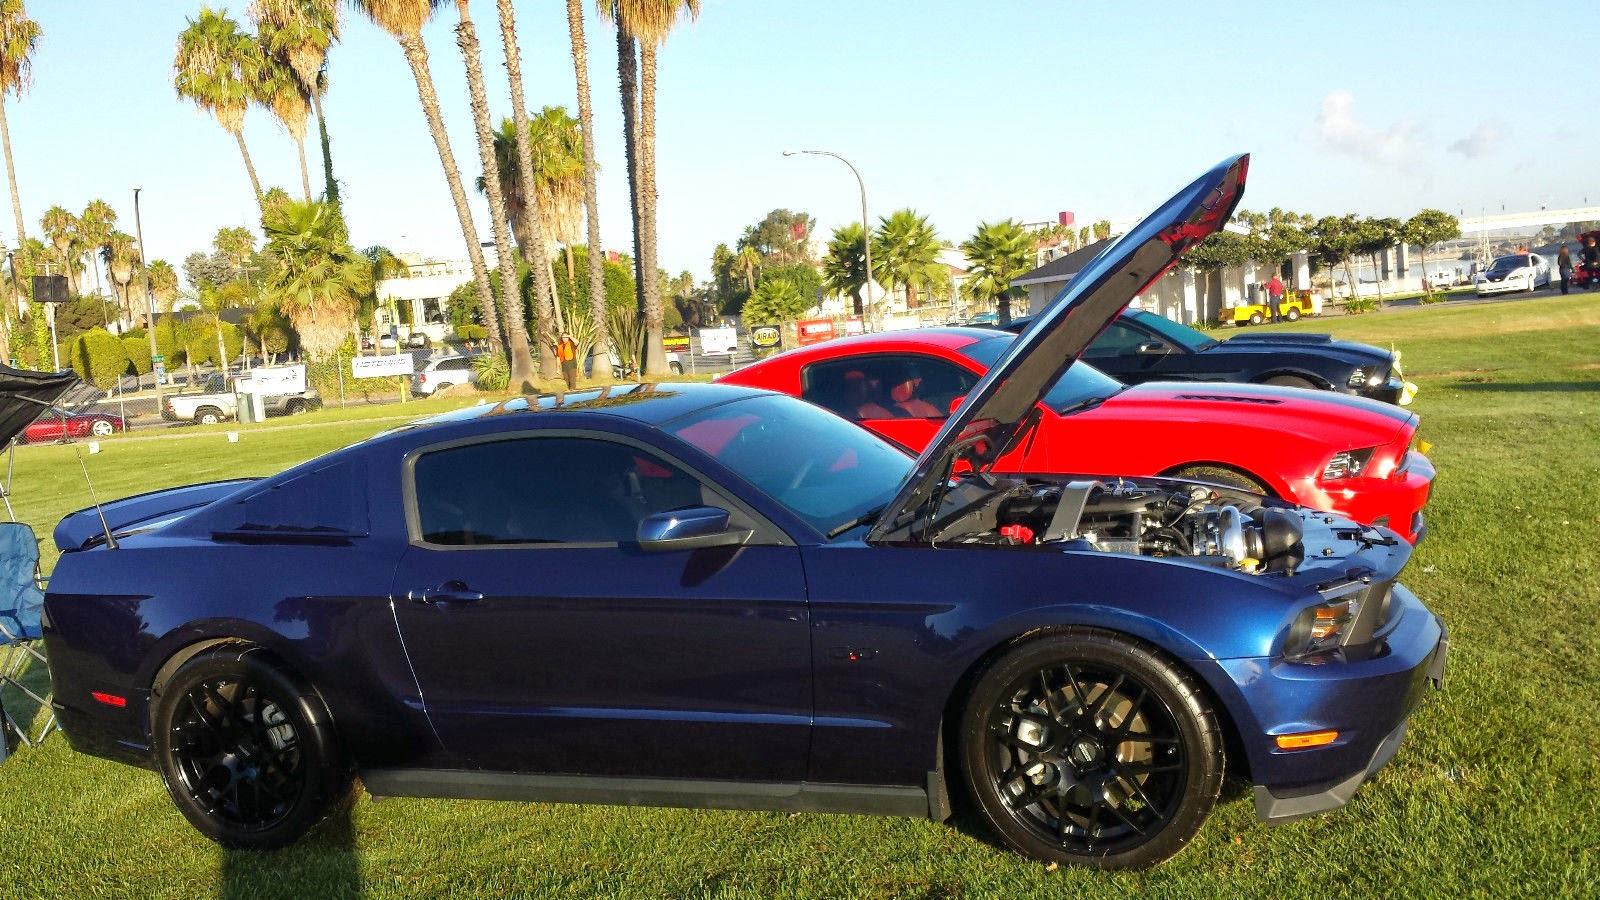 2011 ford mustang gt coupe 2 door 5 0l paxton supercharged at 692rwhp and built forged motor manhle diamond connector rods pistons jba headers x pipe